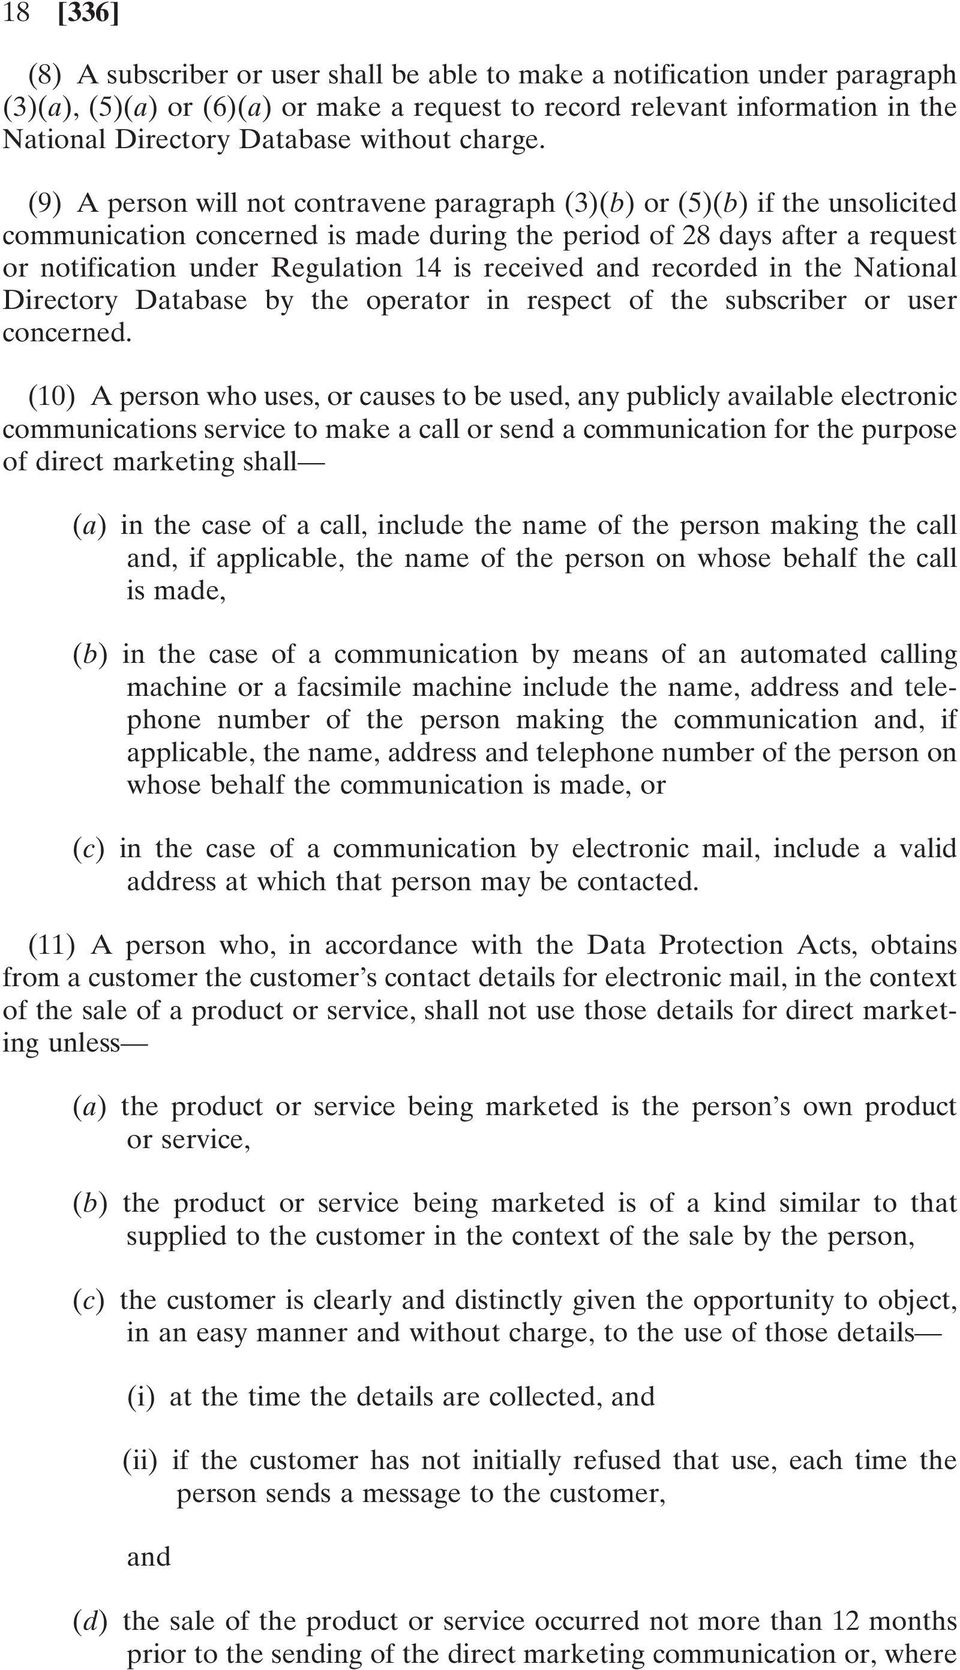 (9) A person will not contravene paragraph (3)(b) or (5)(b) if the unsolicited communication concerned is made during the period of 28 days after a request or notification under Regulation 14 is